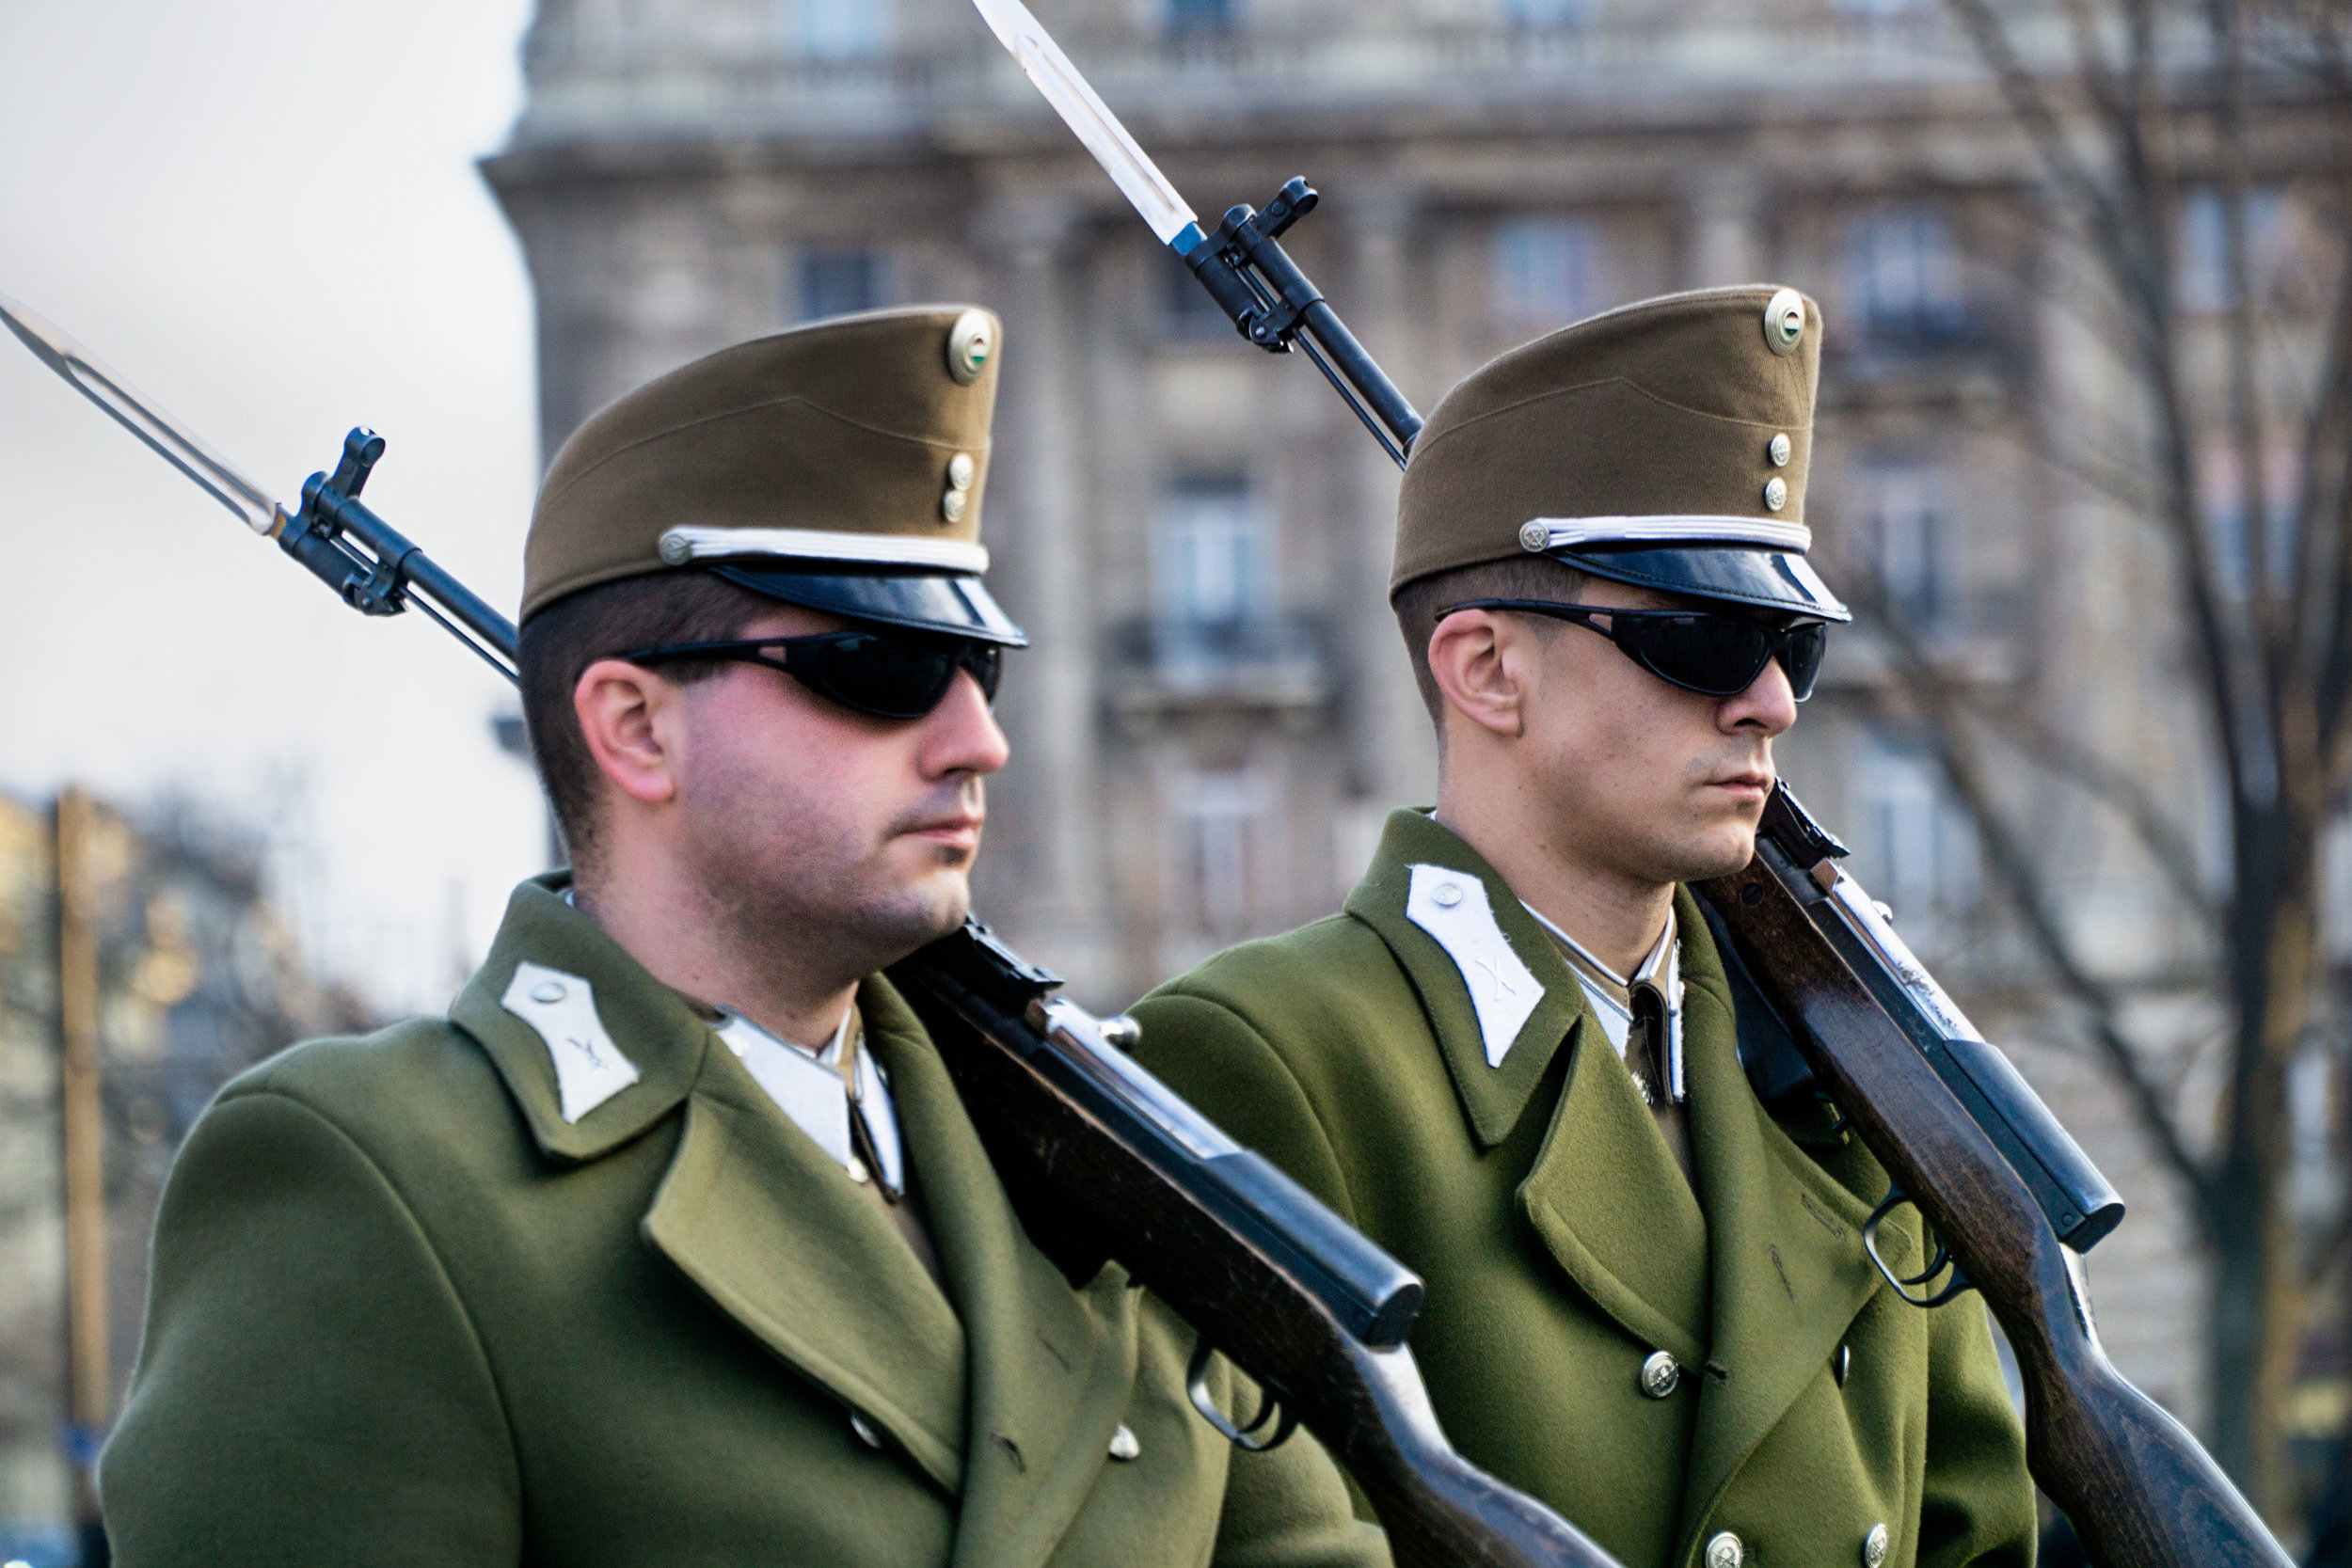 budapest_parliament_building_guards_vickygood_travel_photography2sm.jpg